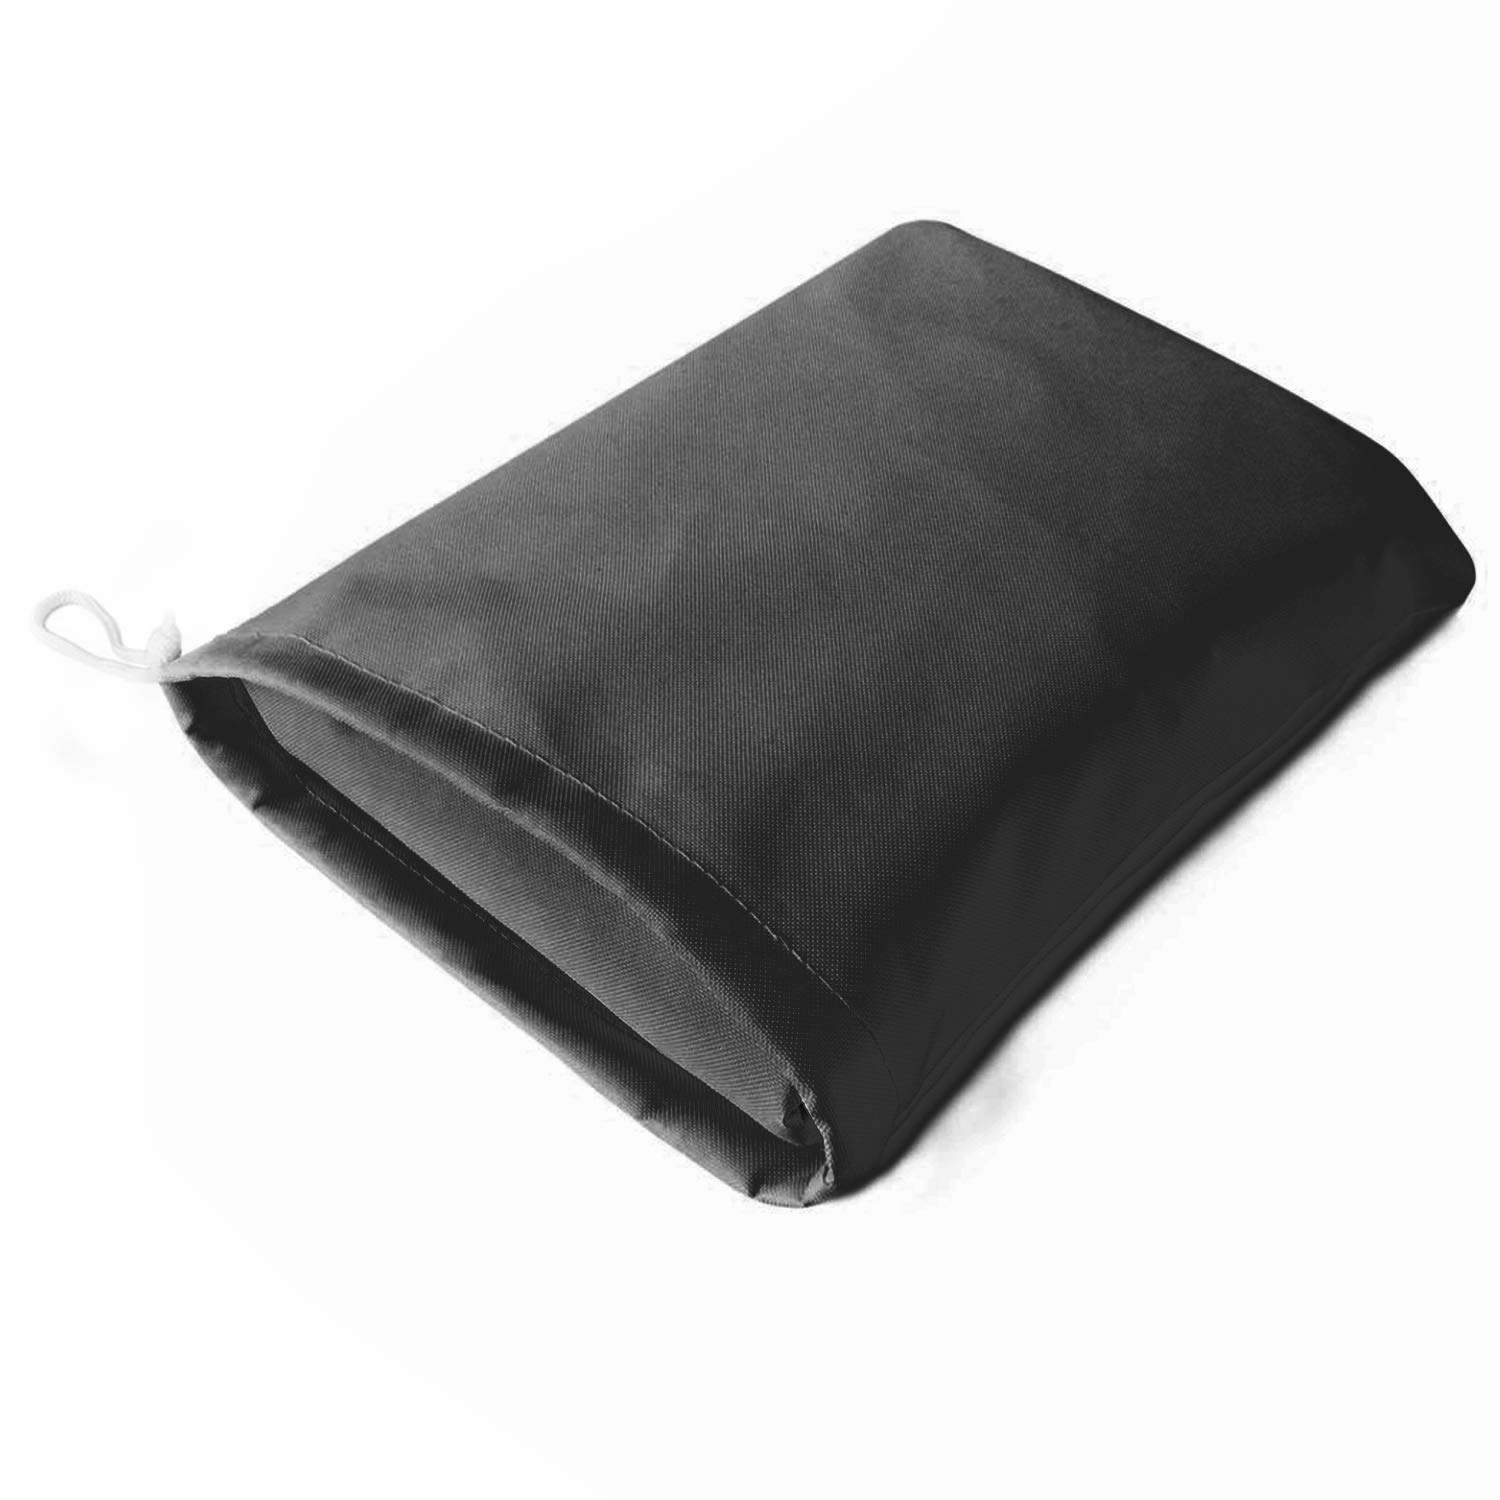 Leader Accessories Durable Universal Waterproof Generator Cover (31'' Lx 29'' Wx 28'' H, Black) by Leader Accessories (Image #7)